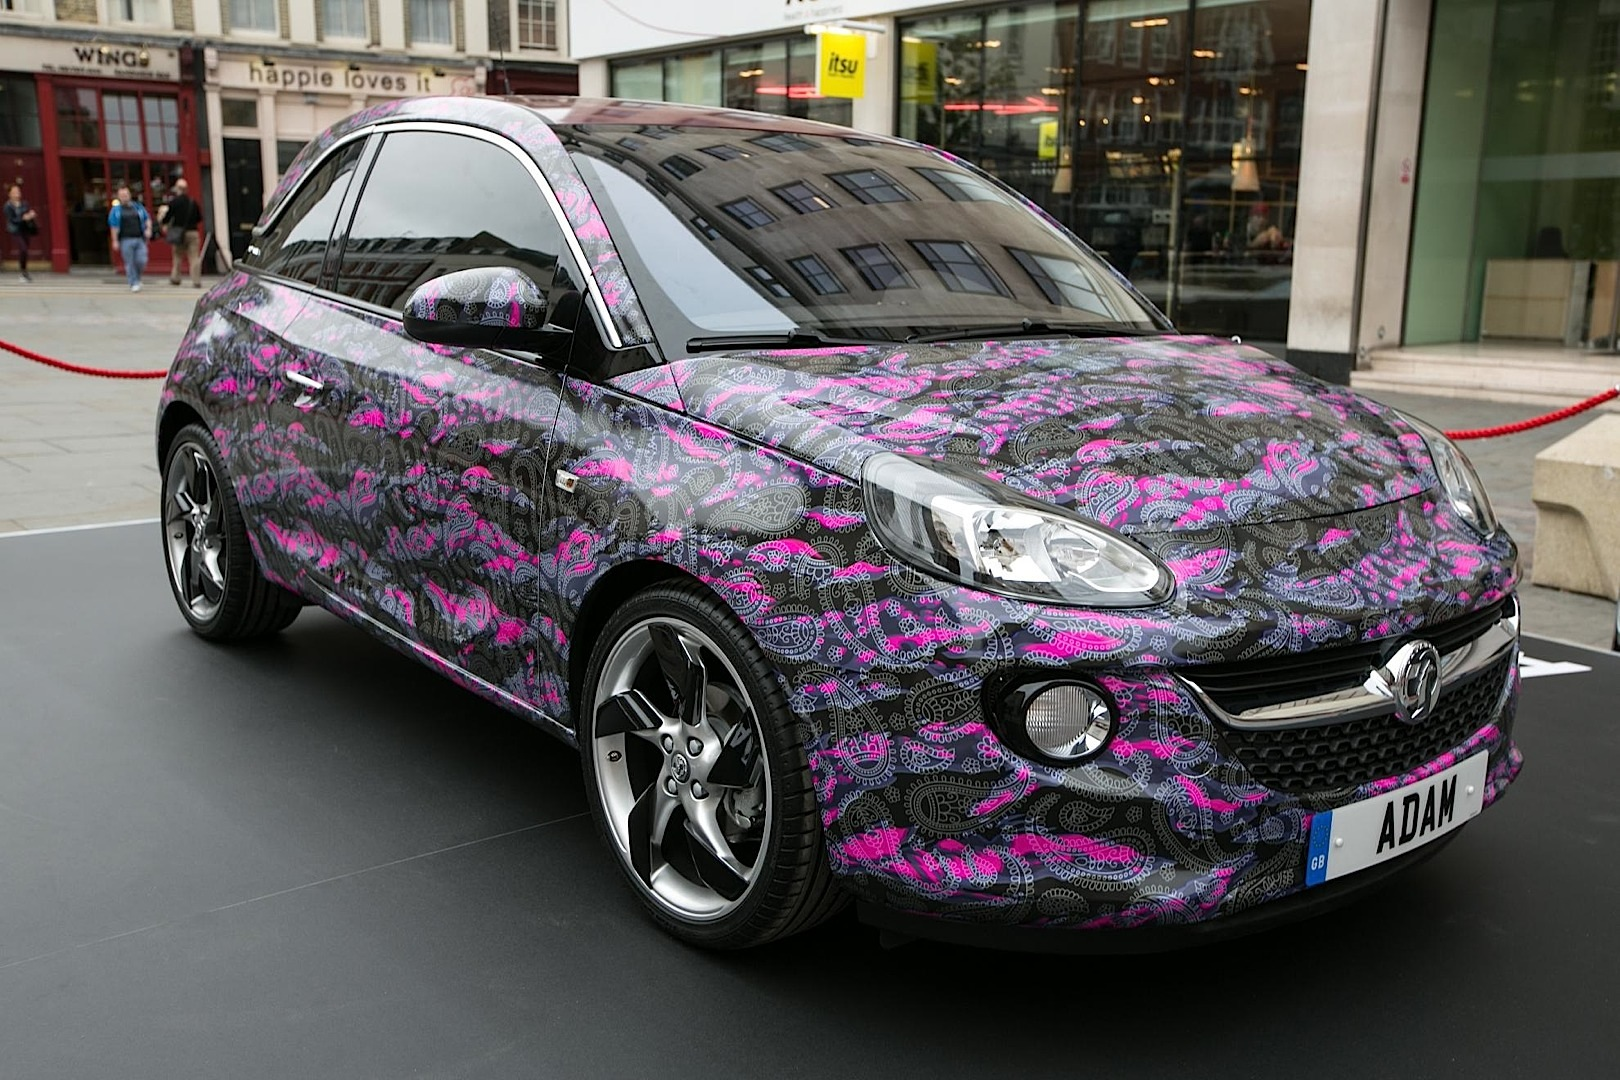 vauxhall opel adam gets 3 one off fashion editions autoevolution. Black Bedroom Furniture Sets. Home Design Ideas